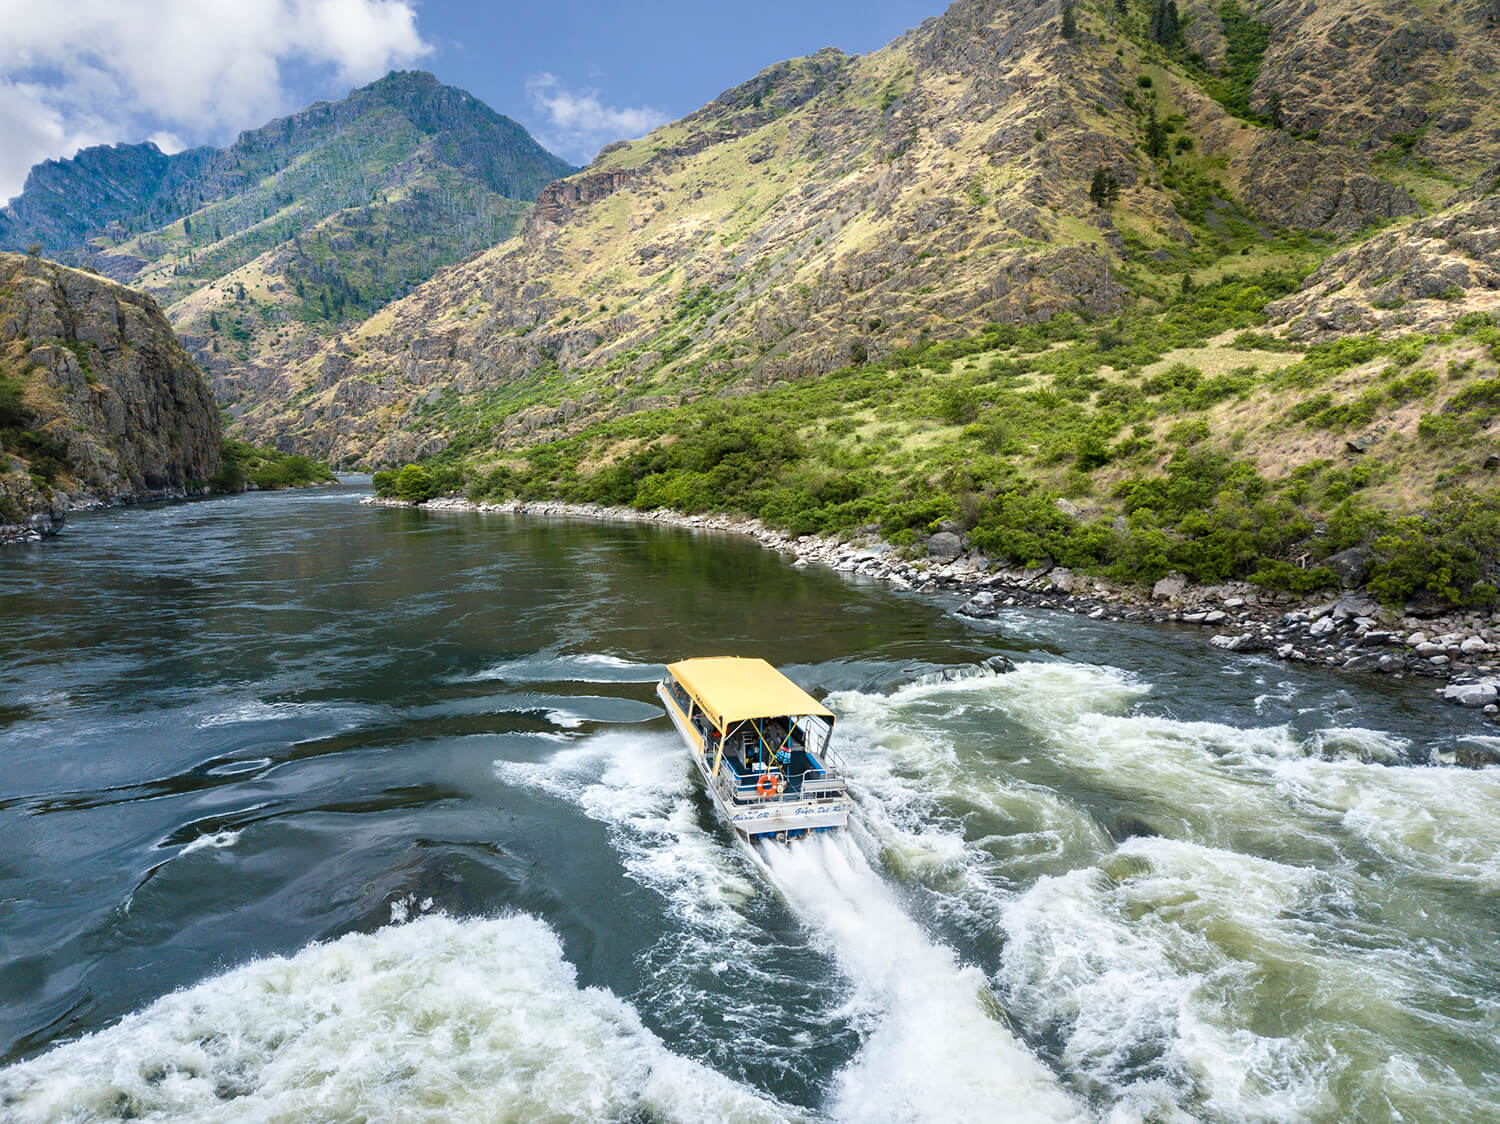 jet boat navigating the river in hells canyon